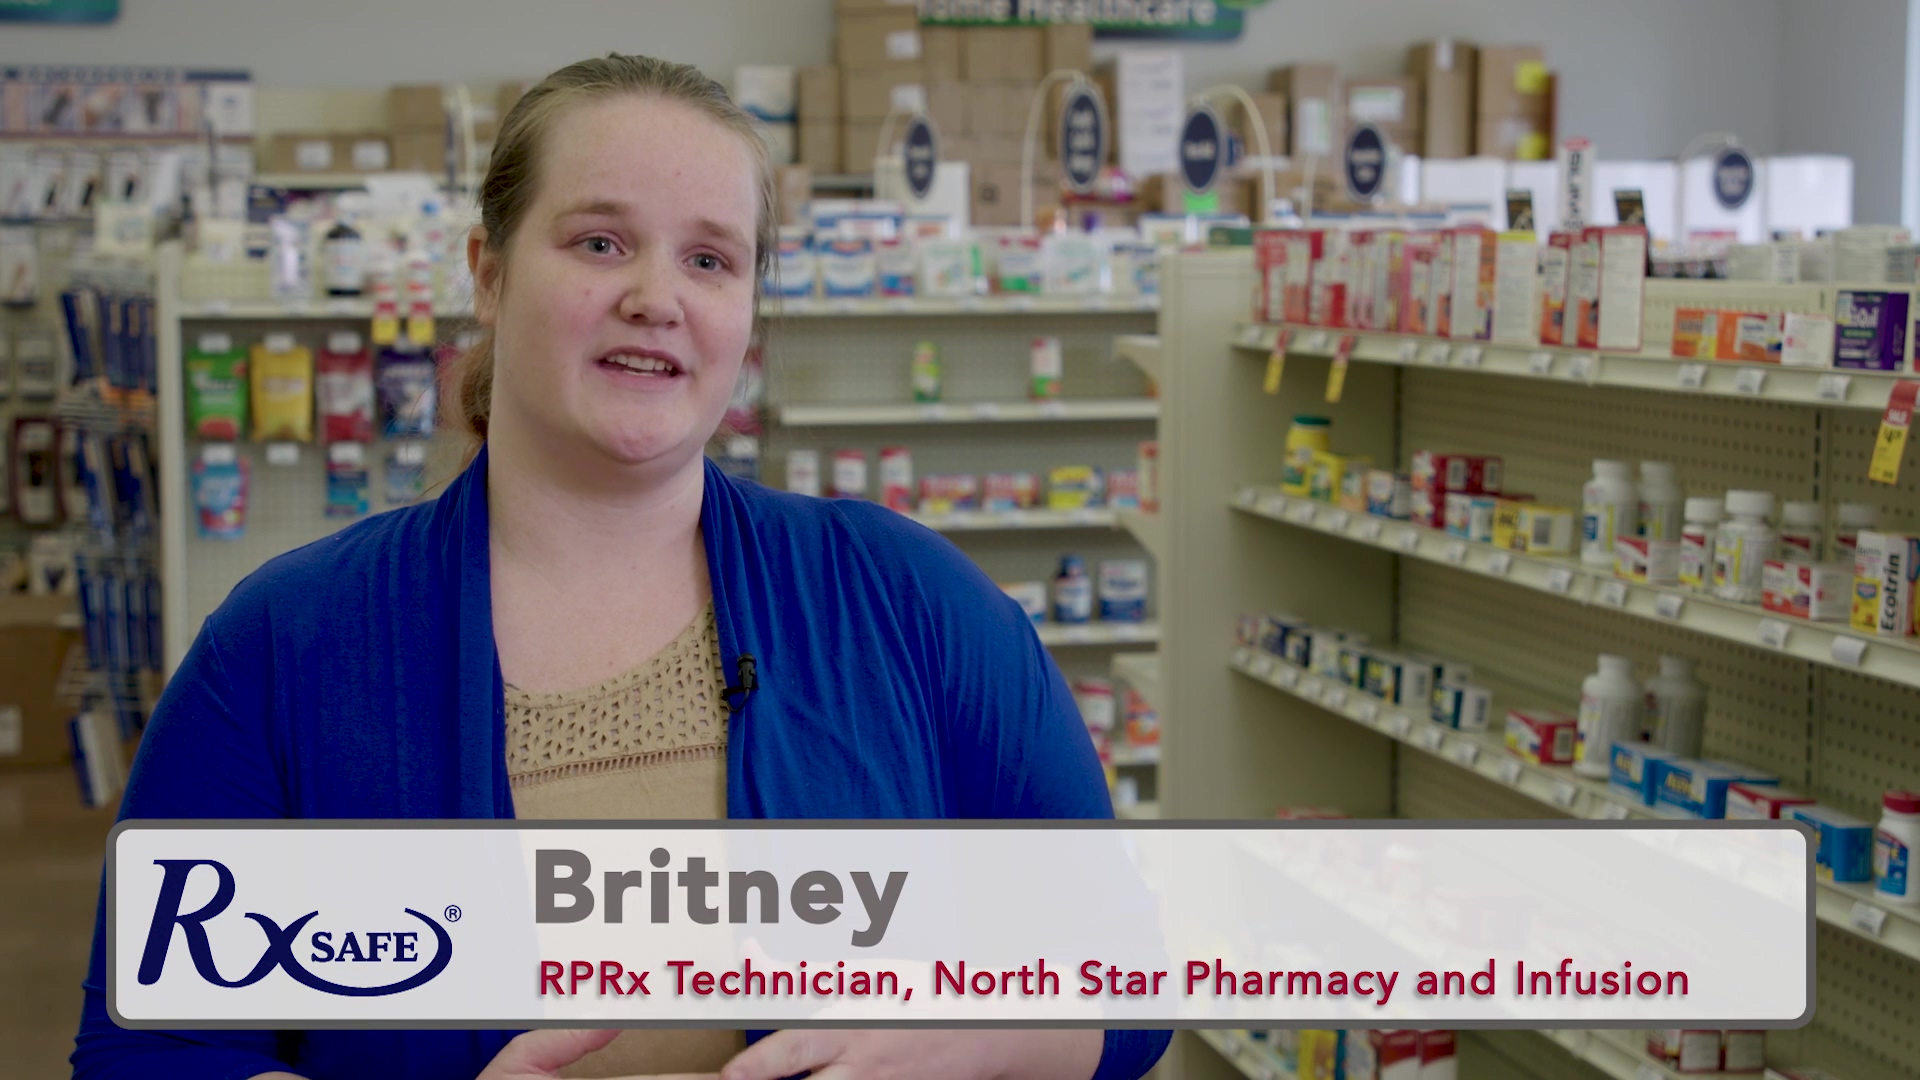 North Star Infusion - Britney - Pharmacy Tech Interview  Edit 02a-